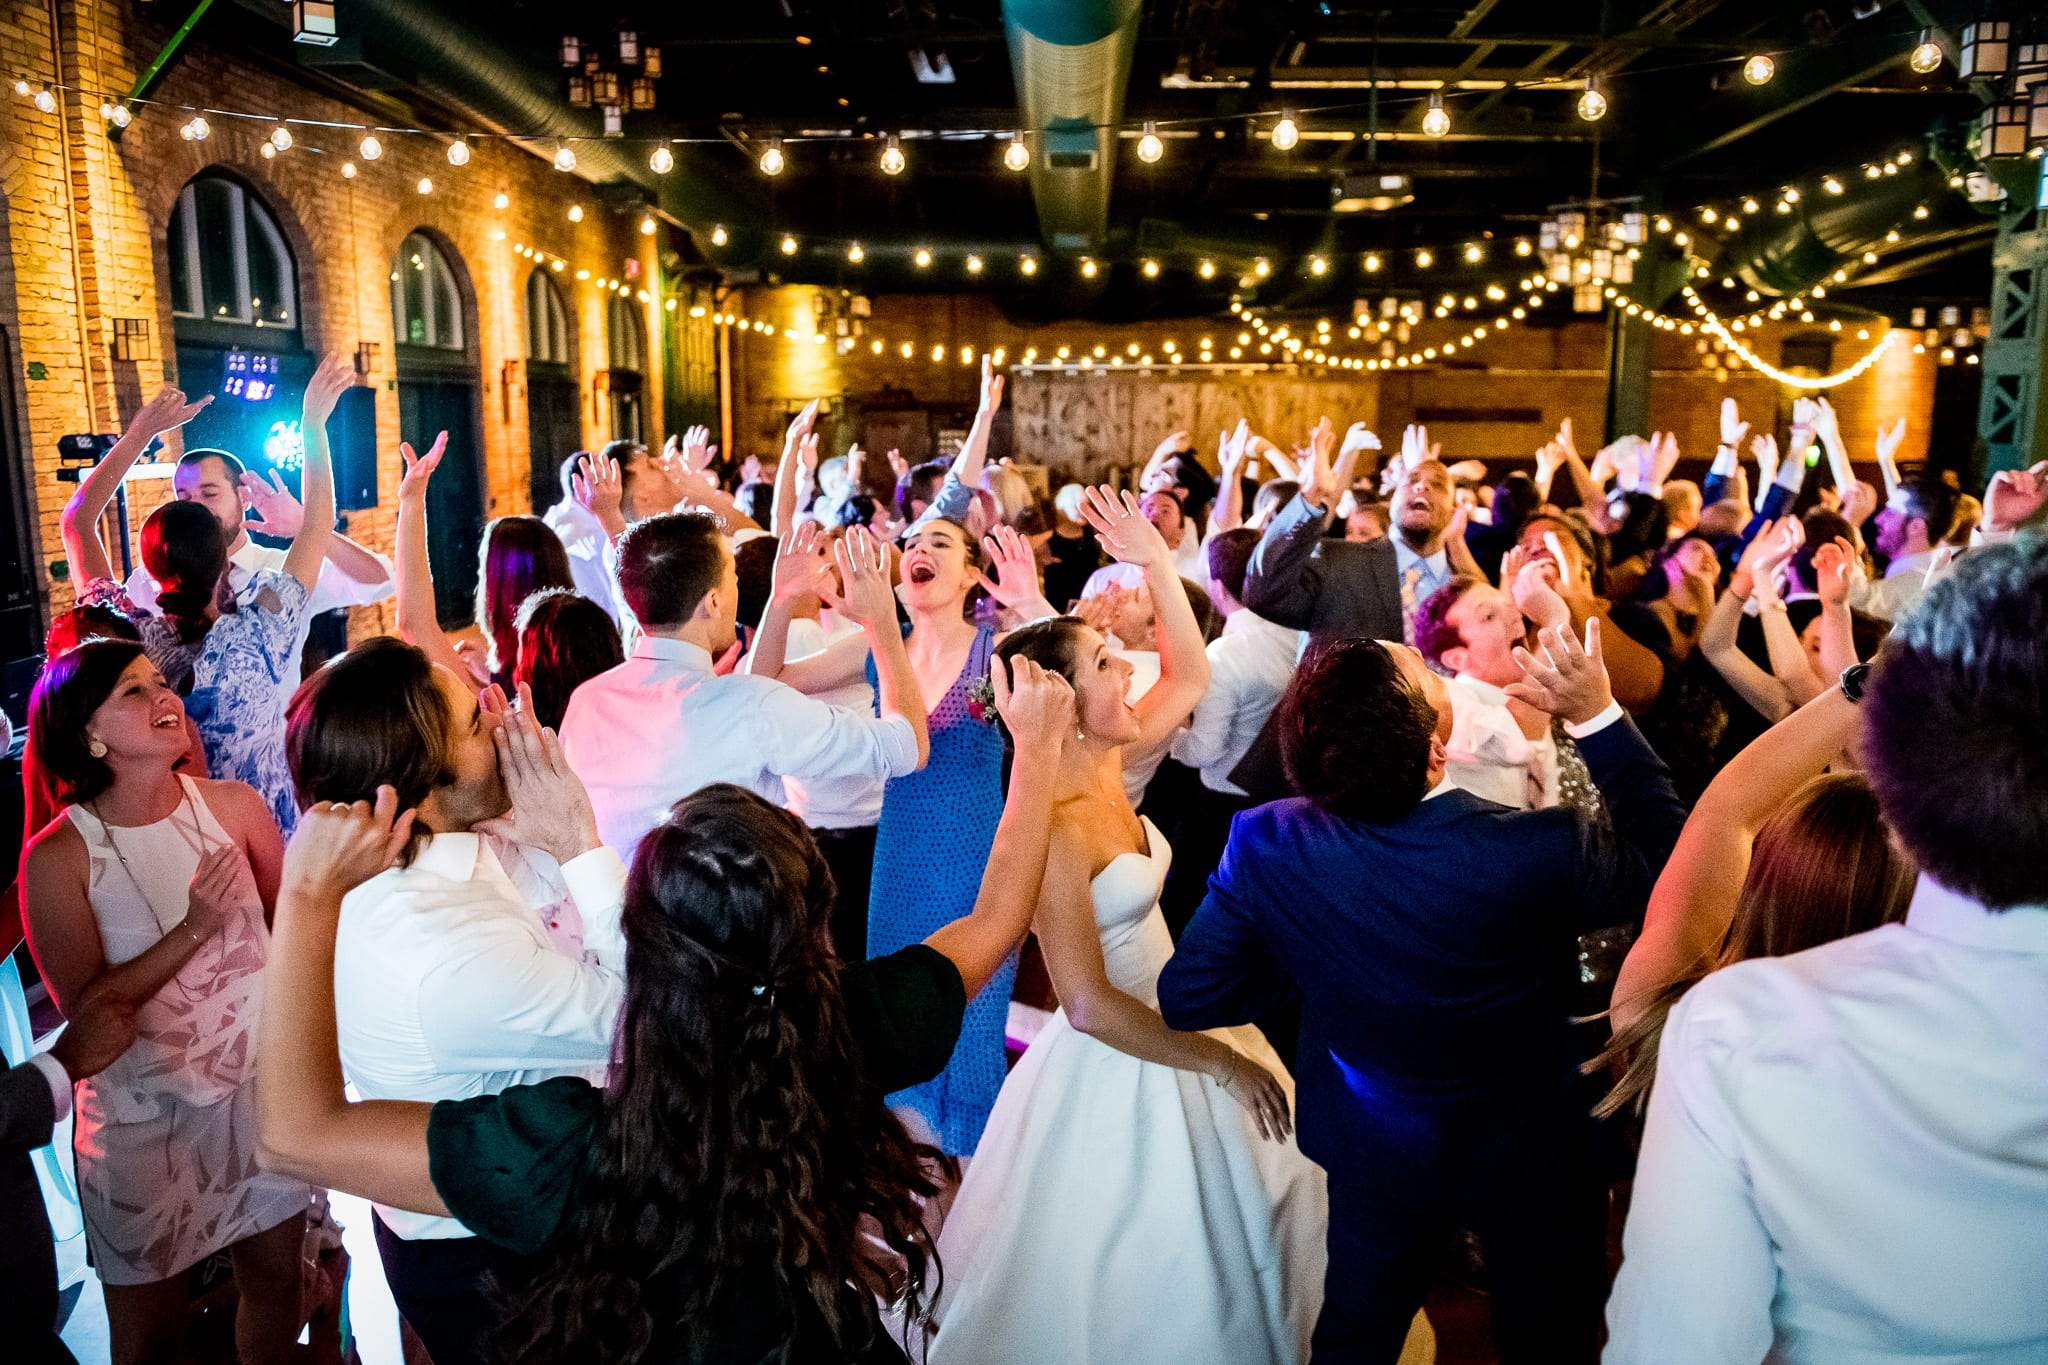 Wide view showing the indoor space of the Nicollet Island Pavilion with a packed dance floor all the wedding guests hands in the air